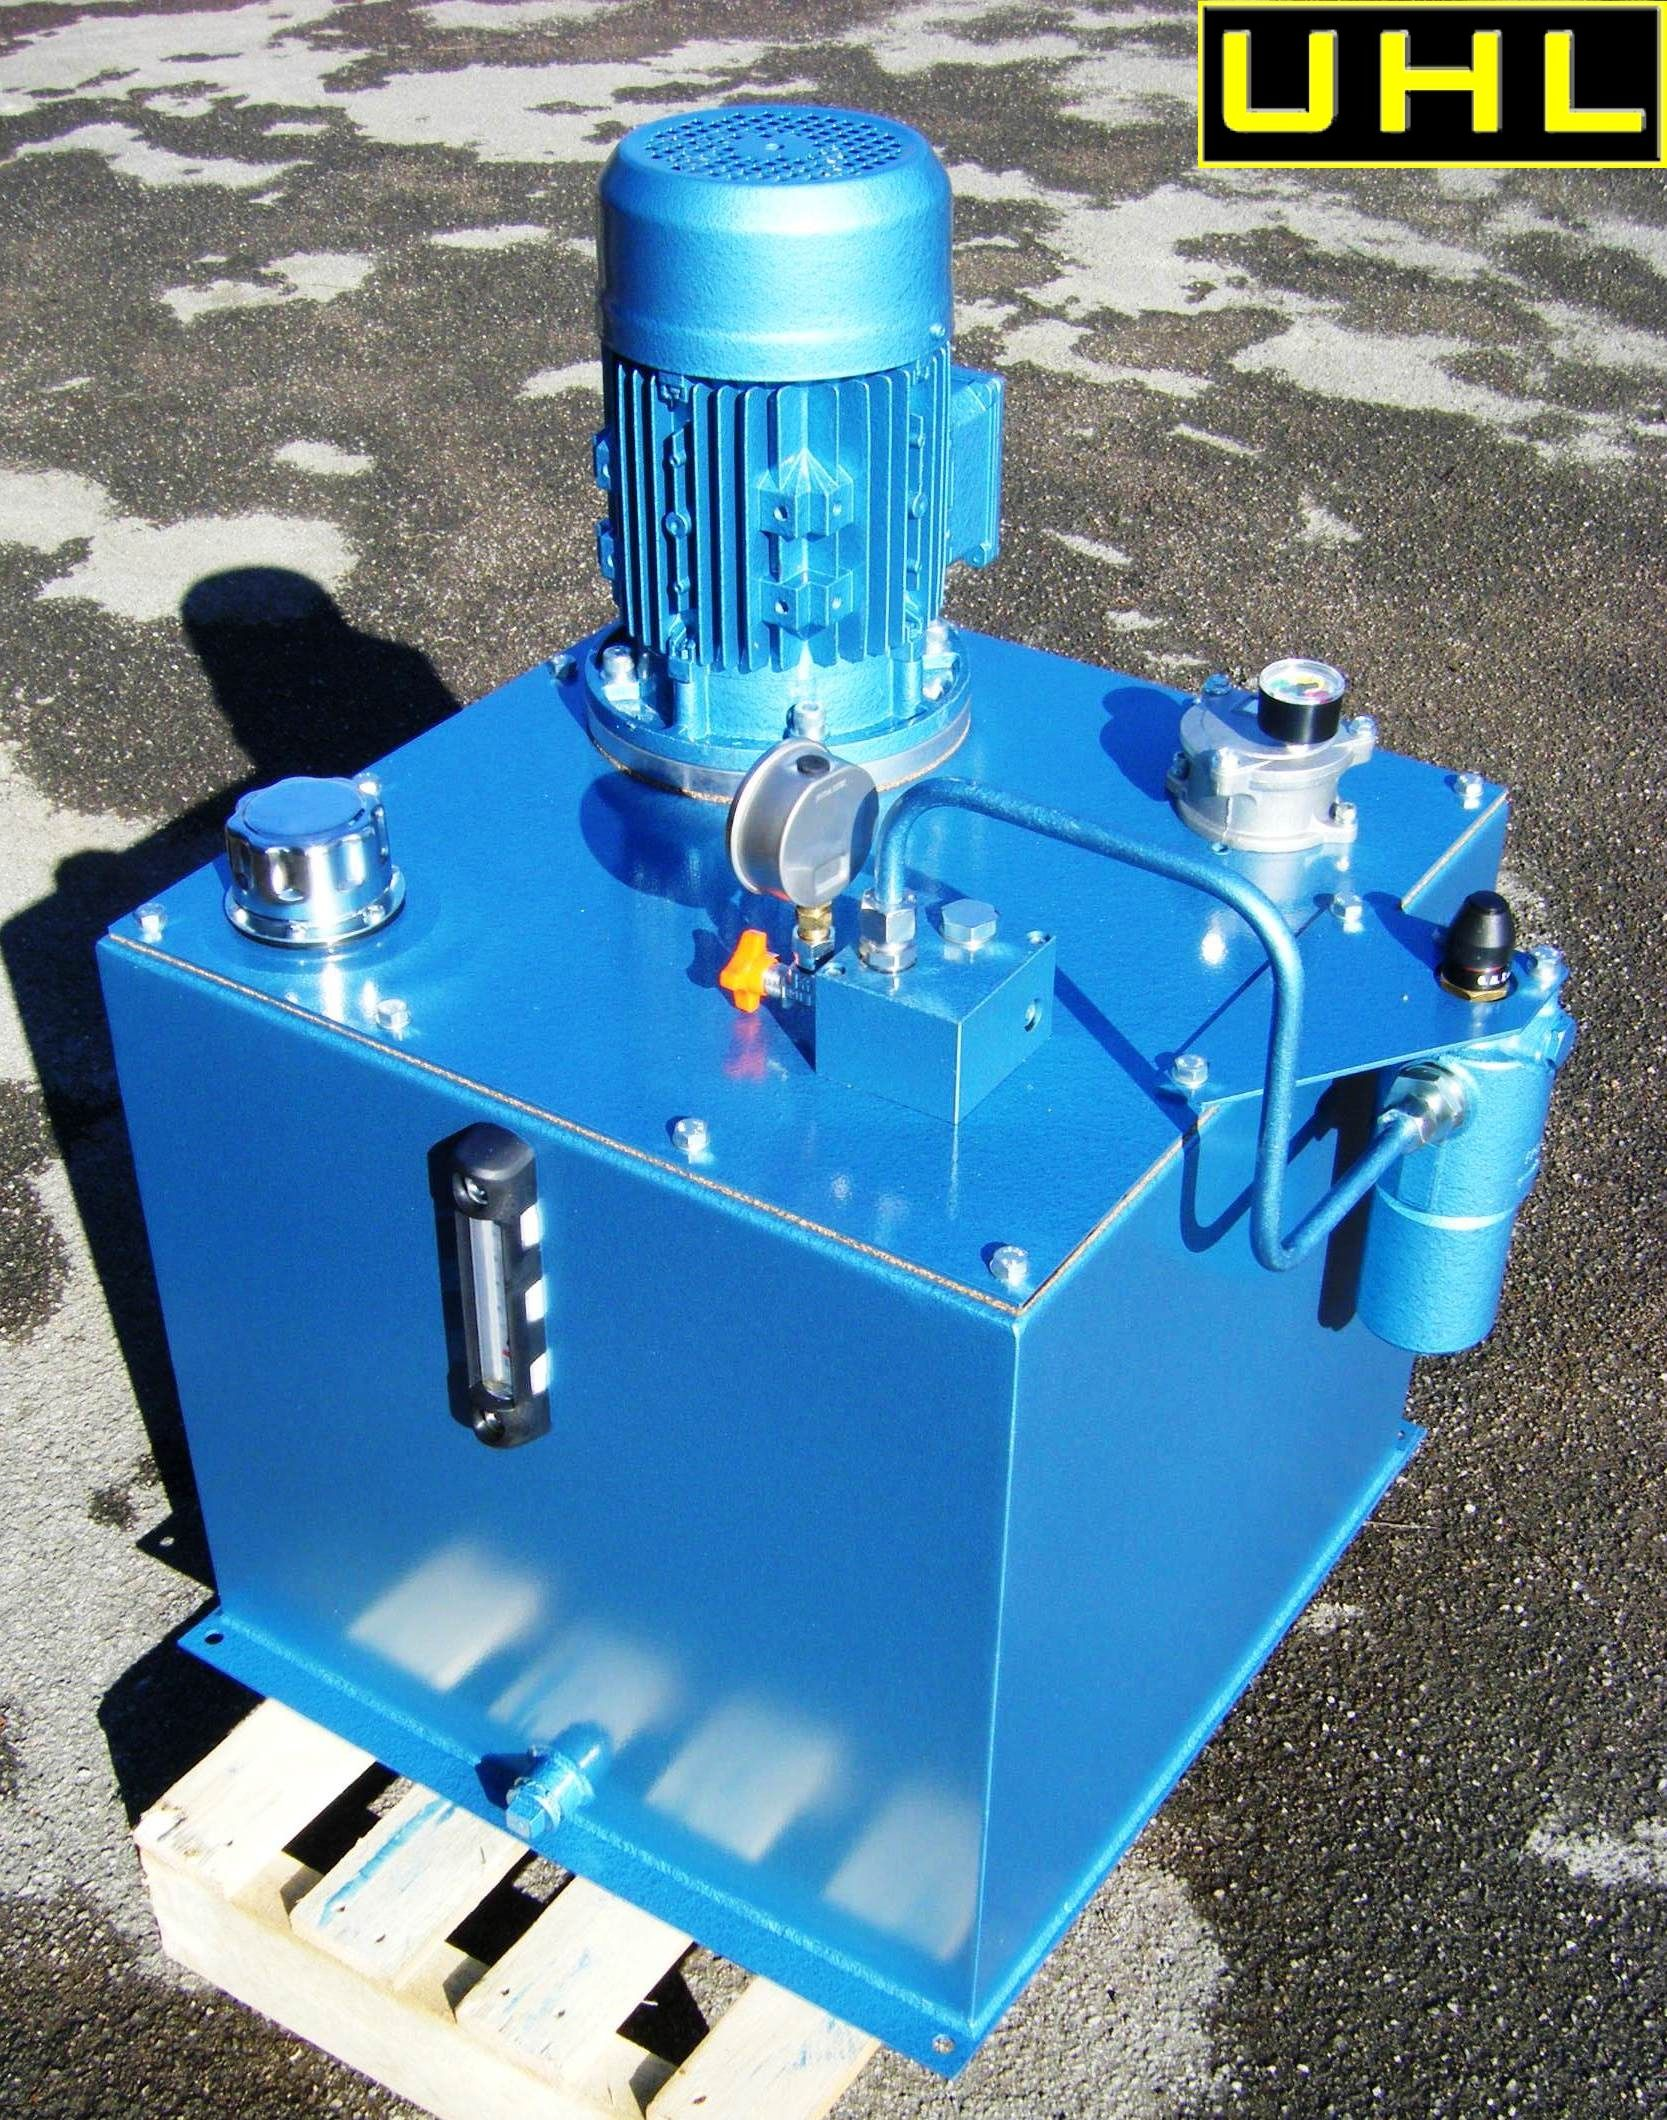 Another Uhl Hydraulic Power Pack Ready For Dispatch Hydraulic Systems Power Pack Power Unit